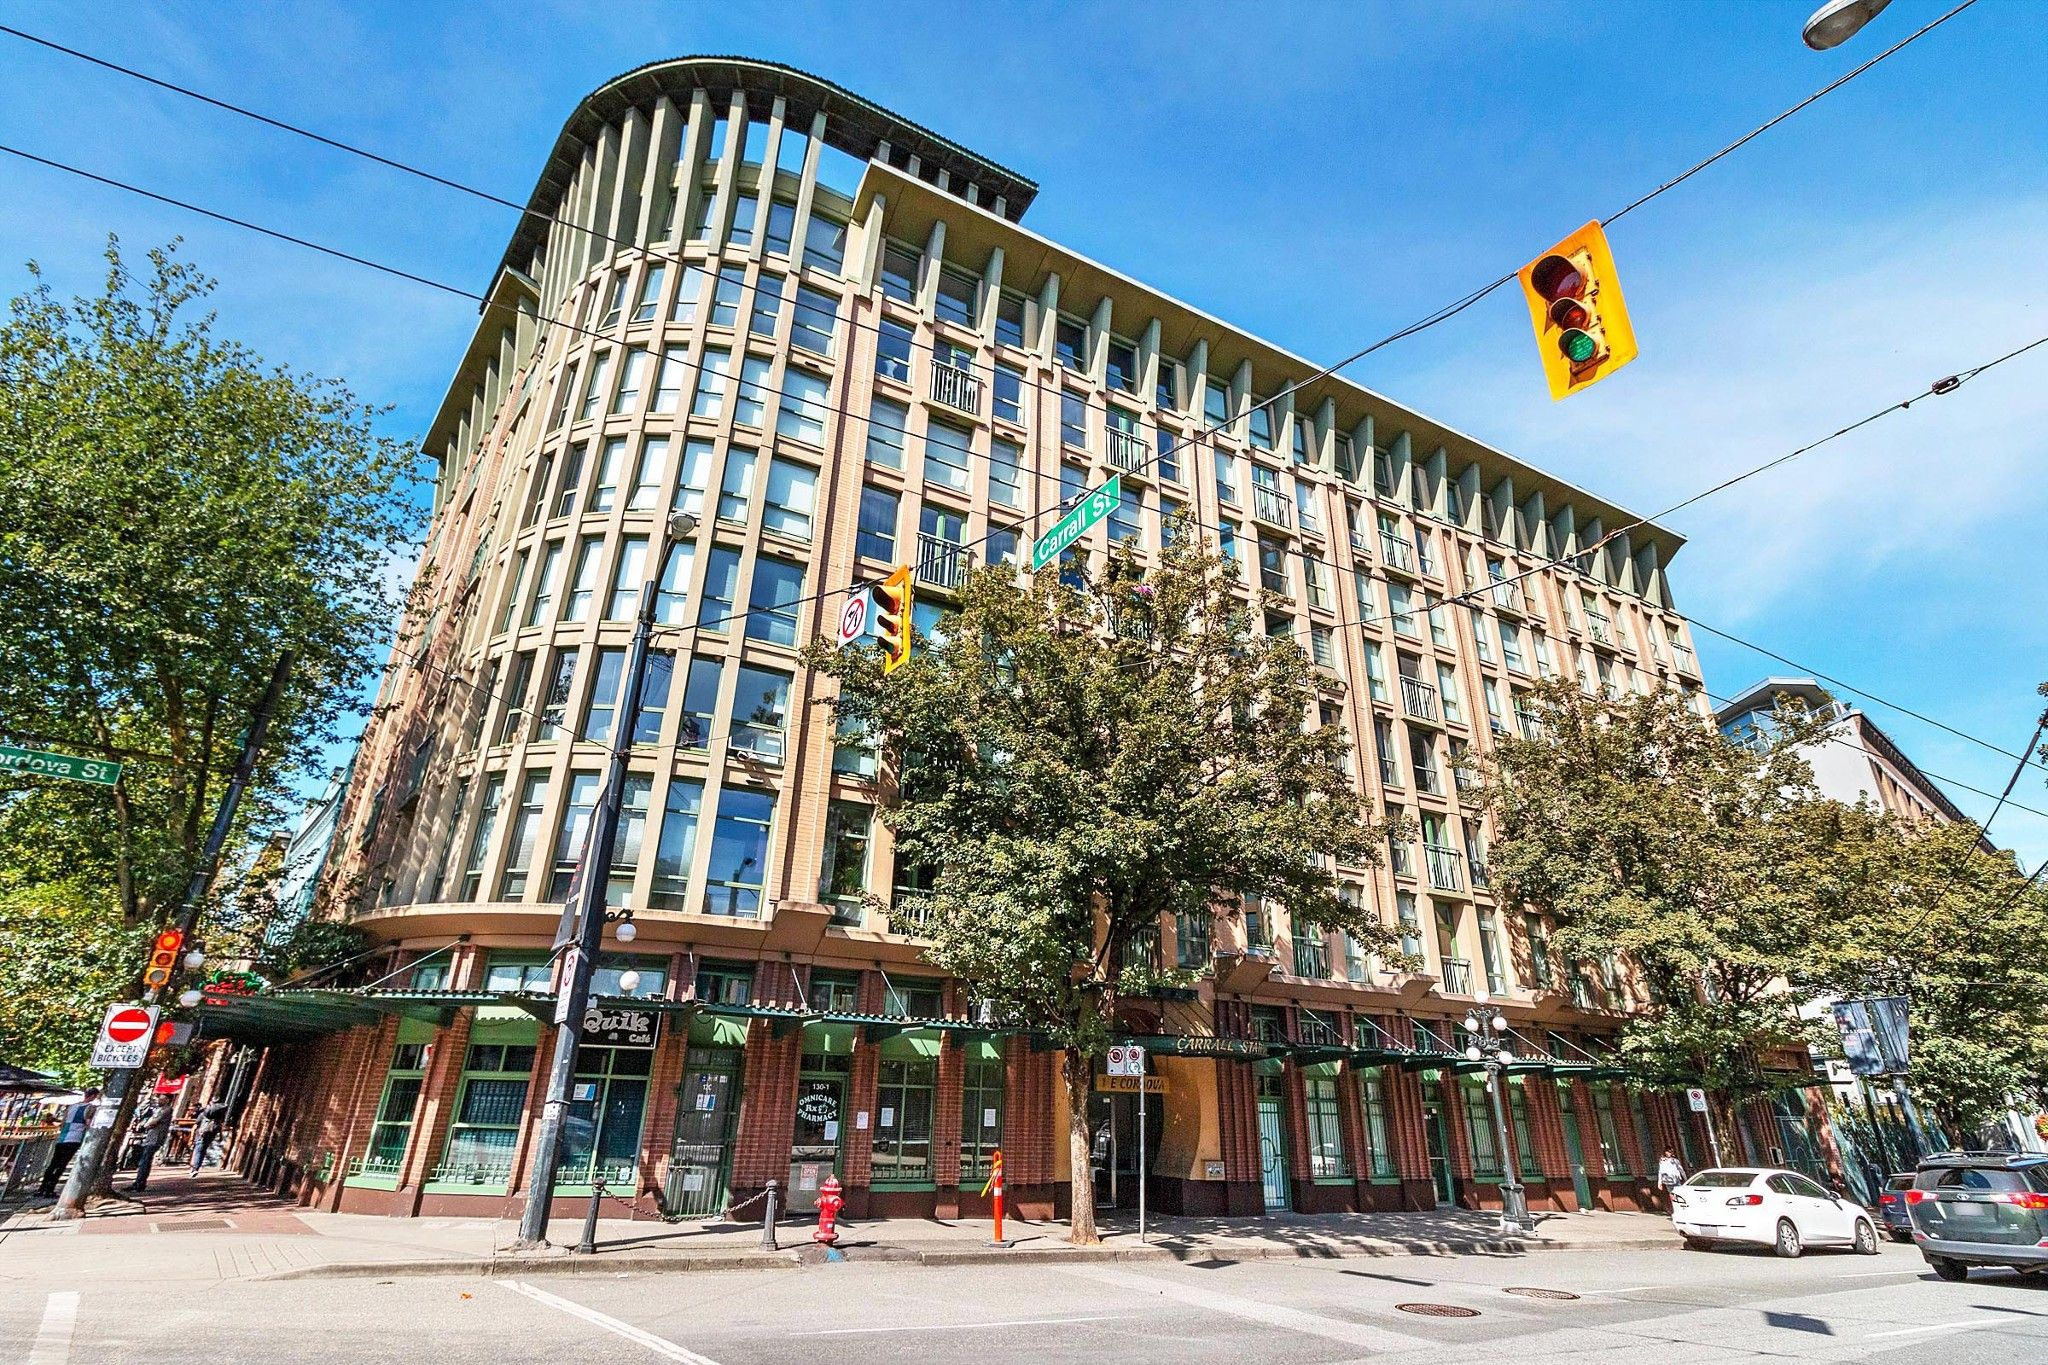 """Main Photo: 512 1 E CORDOVA Street in Vancouver: Downtown VE Condo for sale in """"CARRALL ST STATION"""" (Vancouver East)  : MLS®# R2476960"""